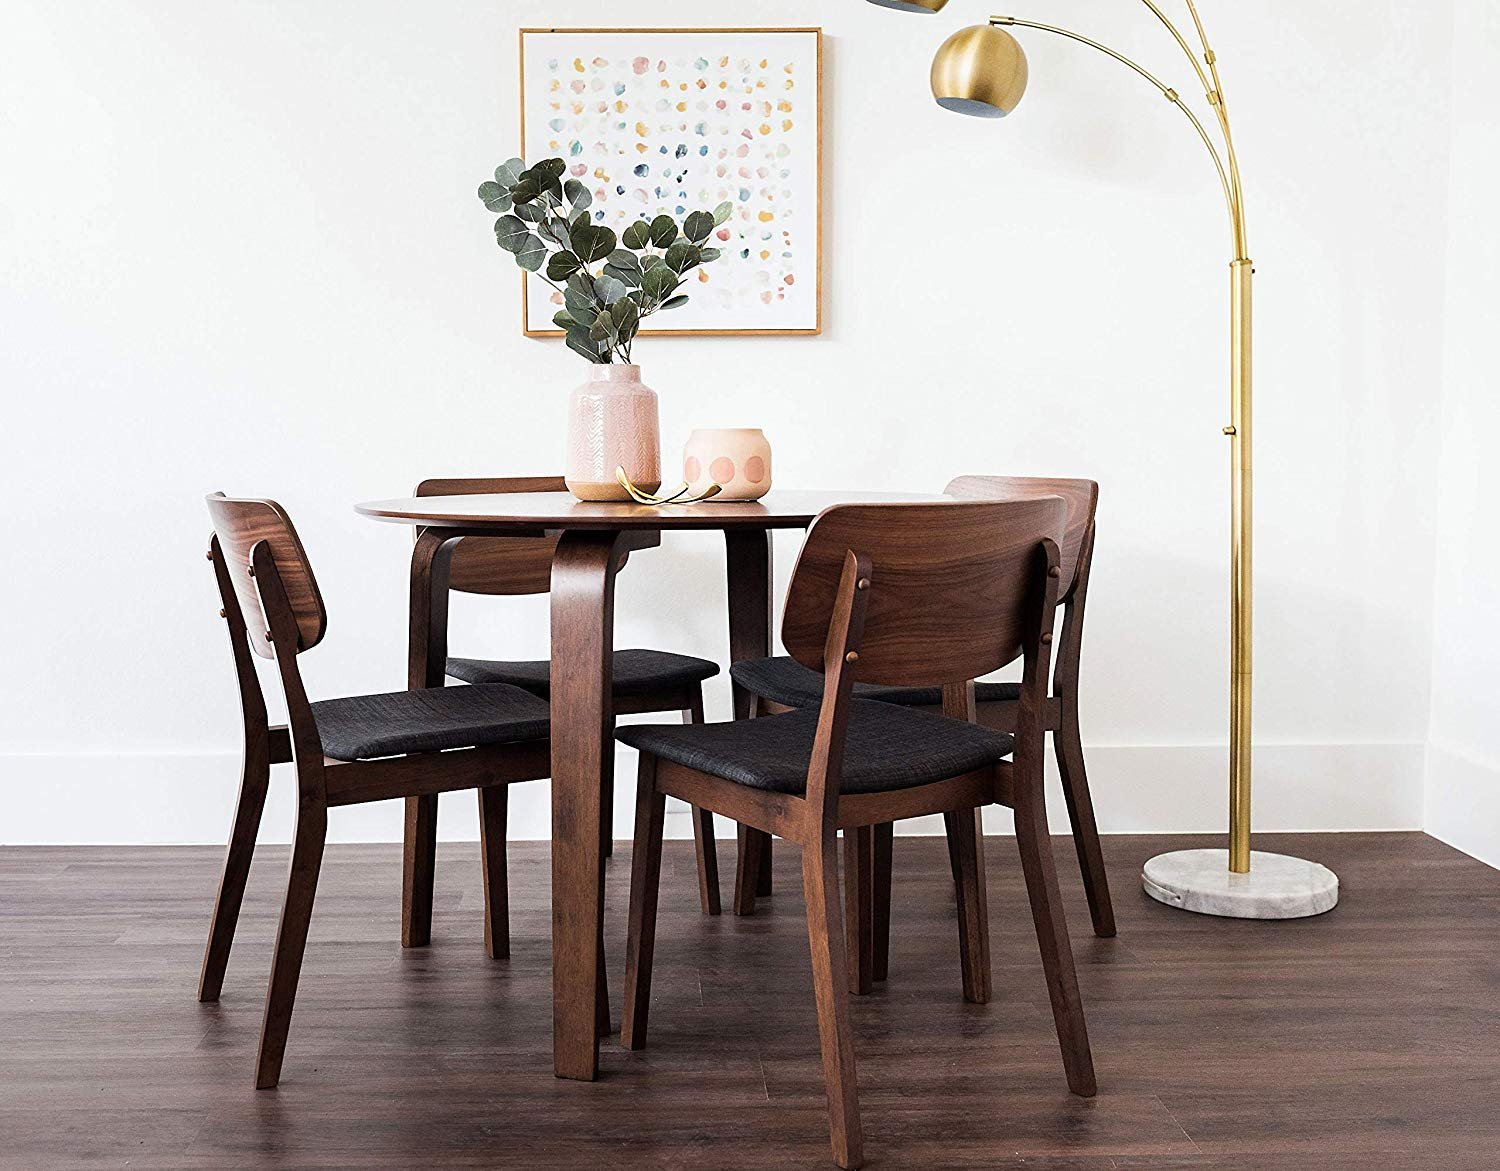 Edloe Finch Dade Jackson Mid-Century Modern 5 Piece Round Dining Table Set for 4, Walnut